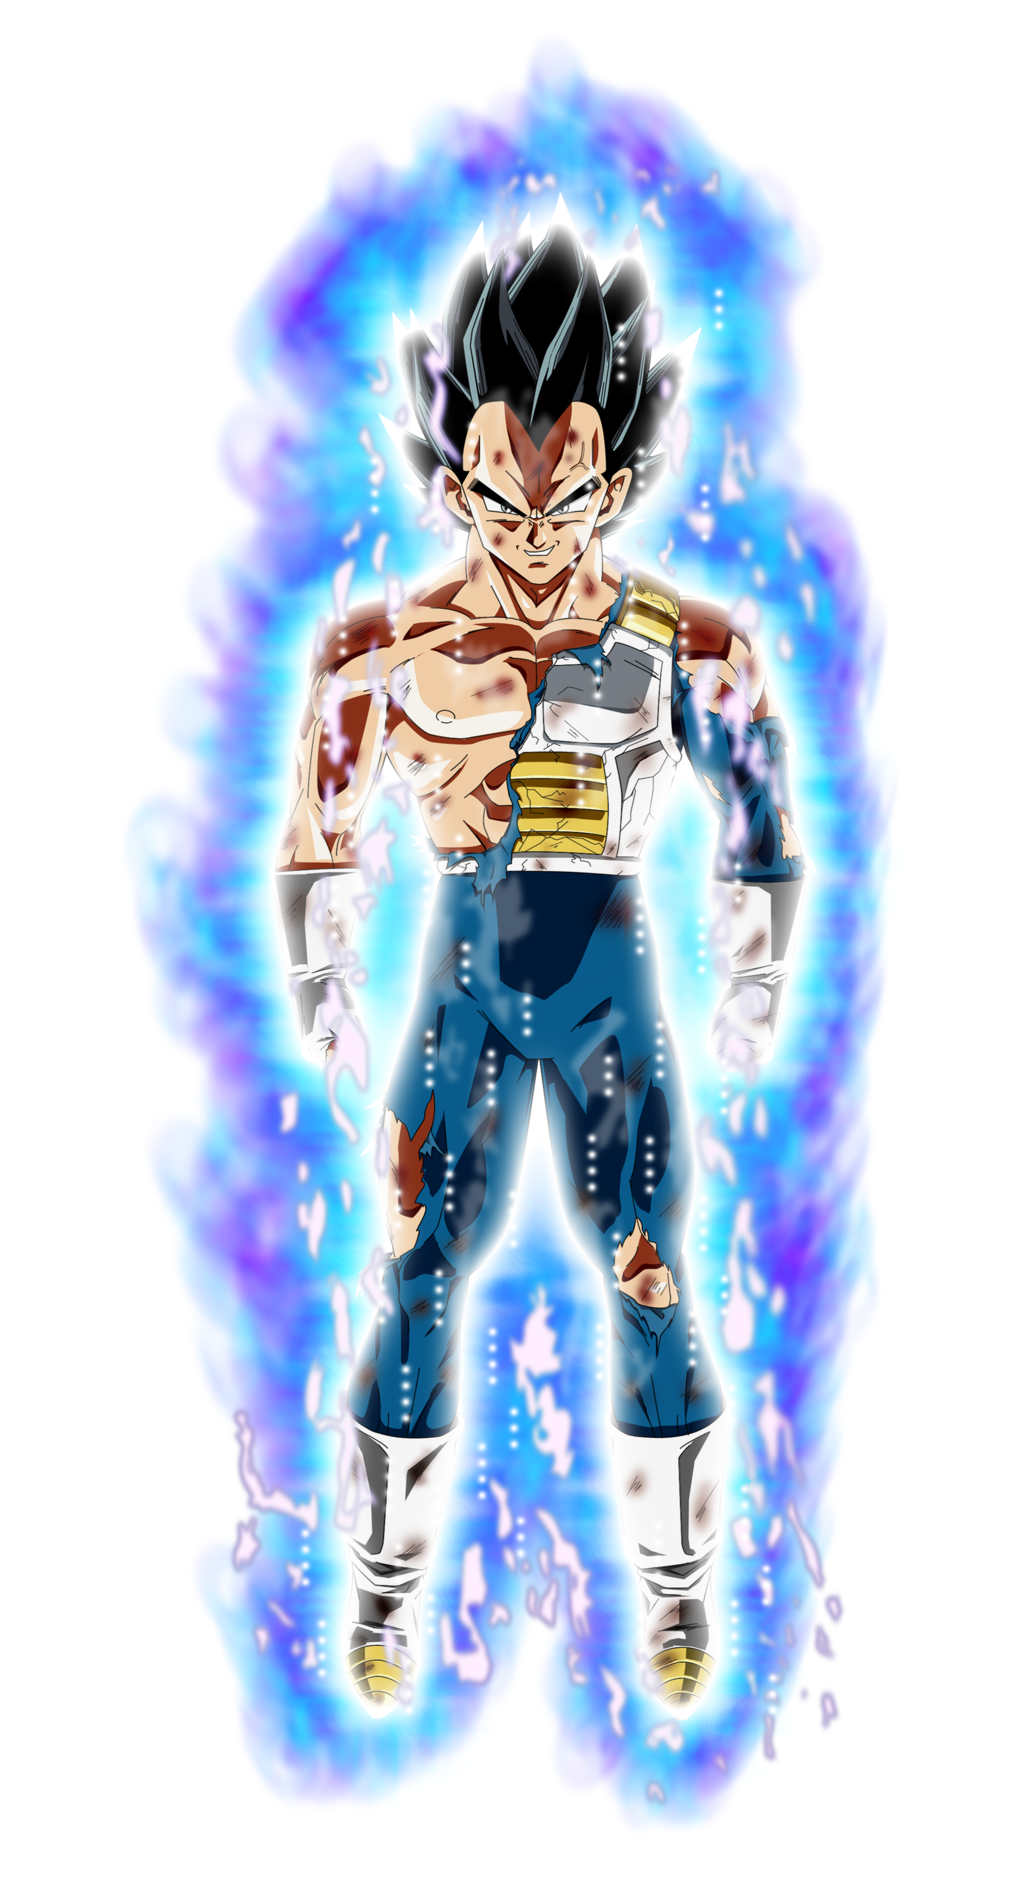 Vegeta Ultra Instinct Aura by BenJ san 1024x1879